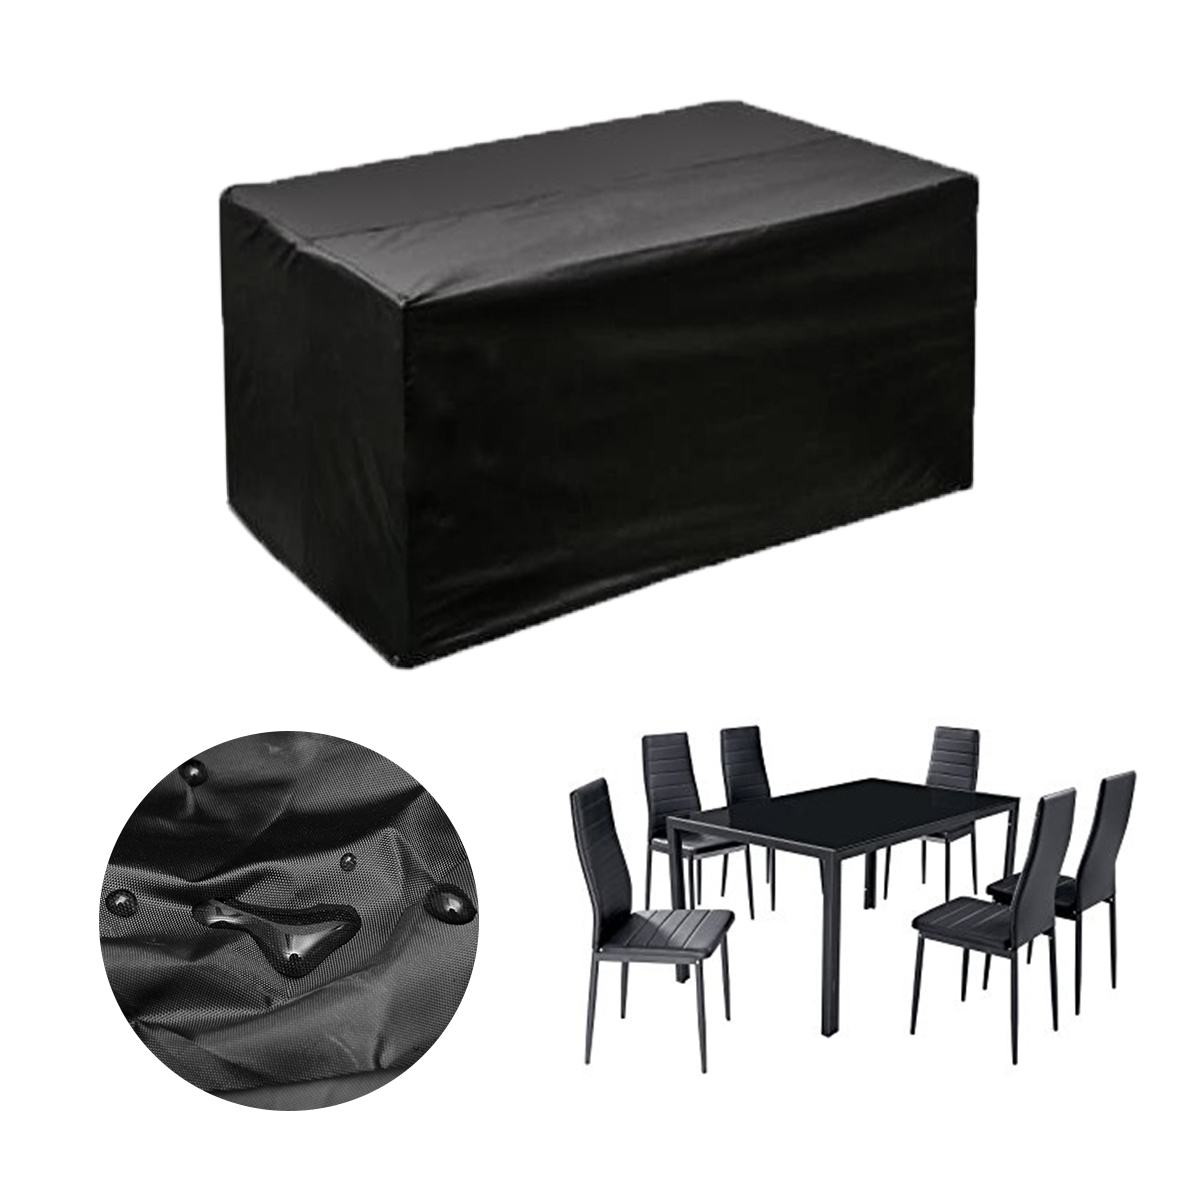 3 Sizes Waterproof Rectangular Outdoor Rattan Table Protection Dust Cover Canopy Supplies Black Garden Patio Furniture Cover